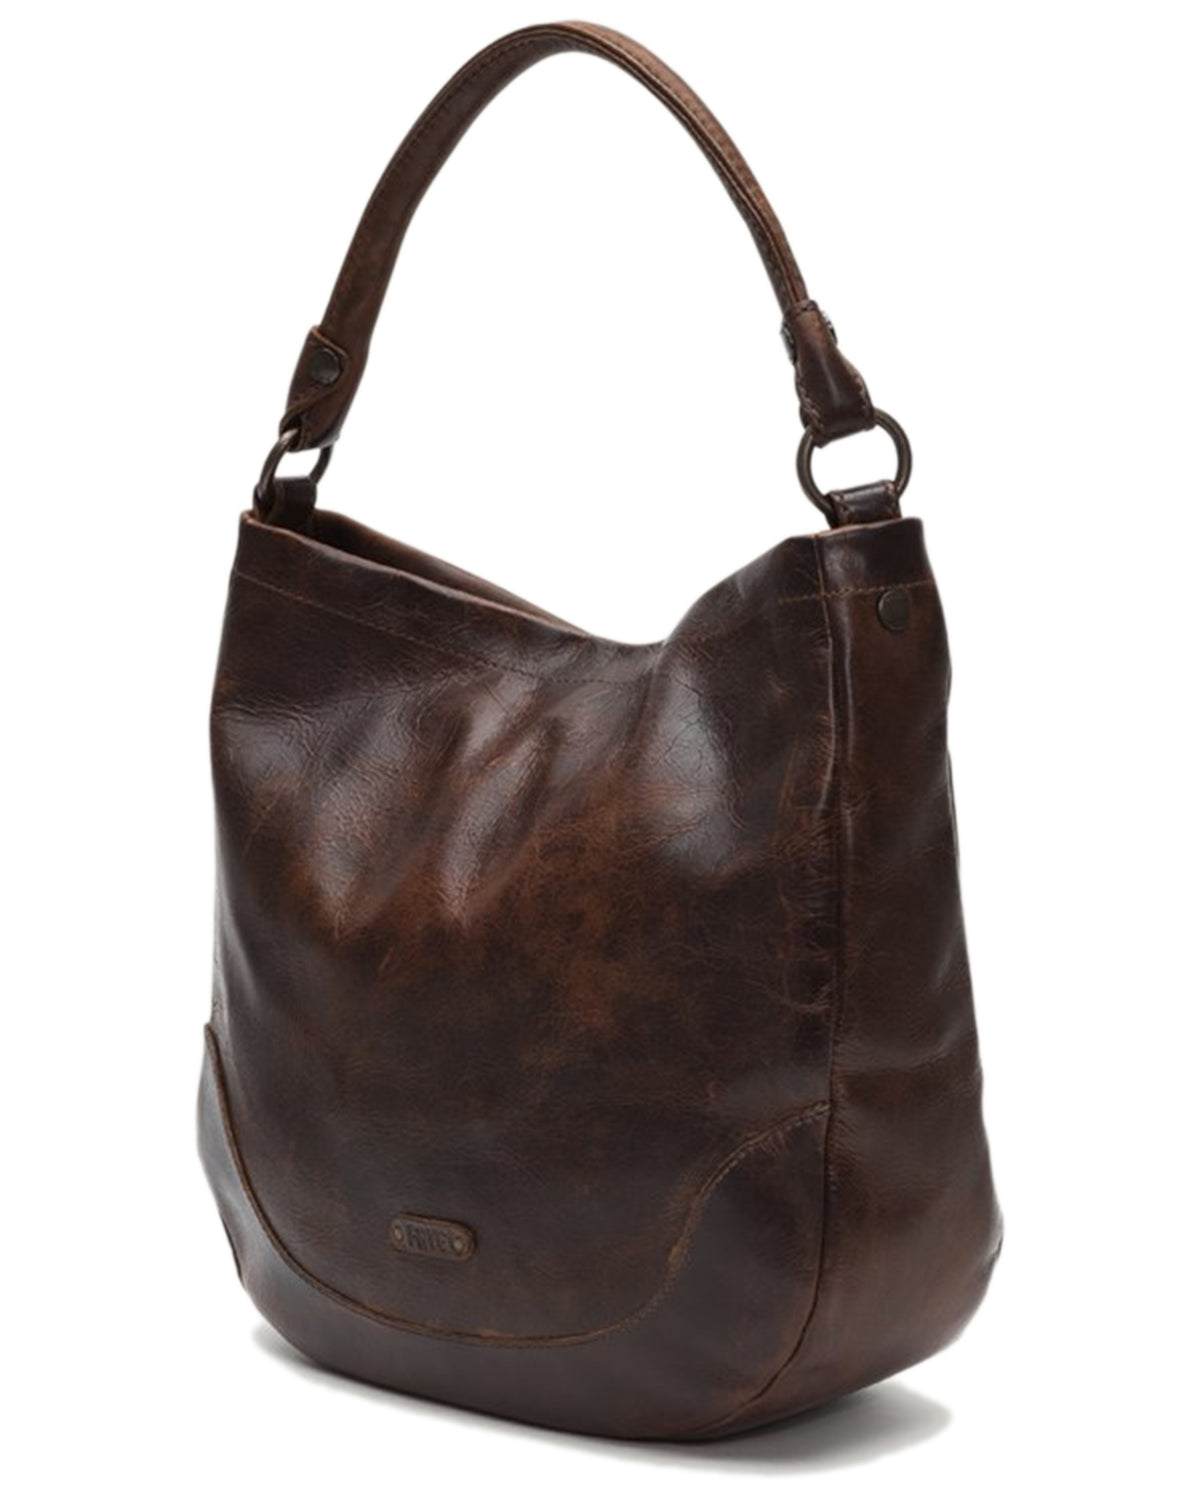 Frye Accessories Dark Brown / O/S Melissa Hobo